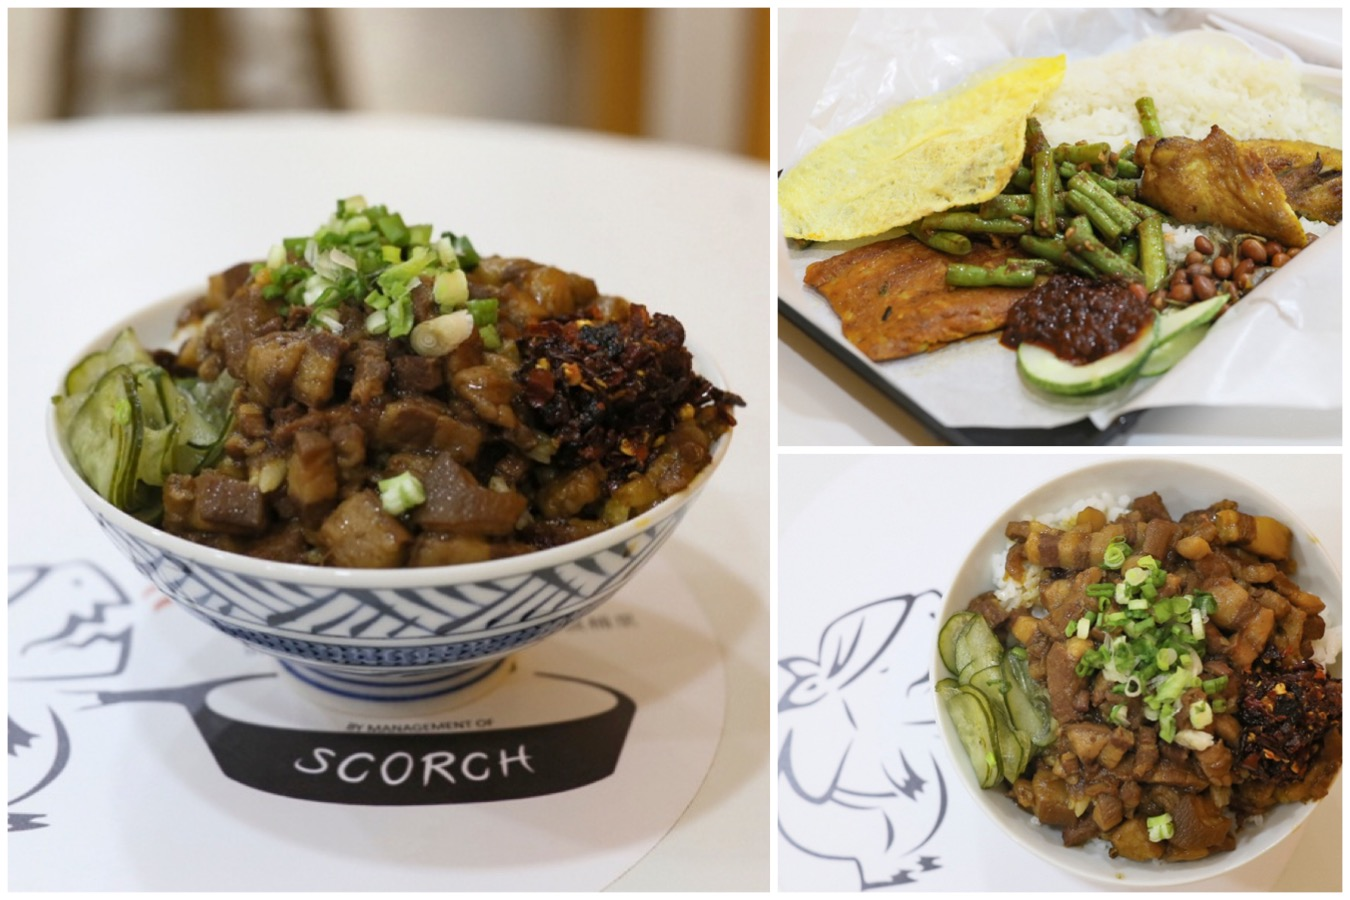 Scorch 一把火 - $3 Taiwanese Lu Rou Fan And Nasi Lemak Sets At Clifford Centre, Raffles Place